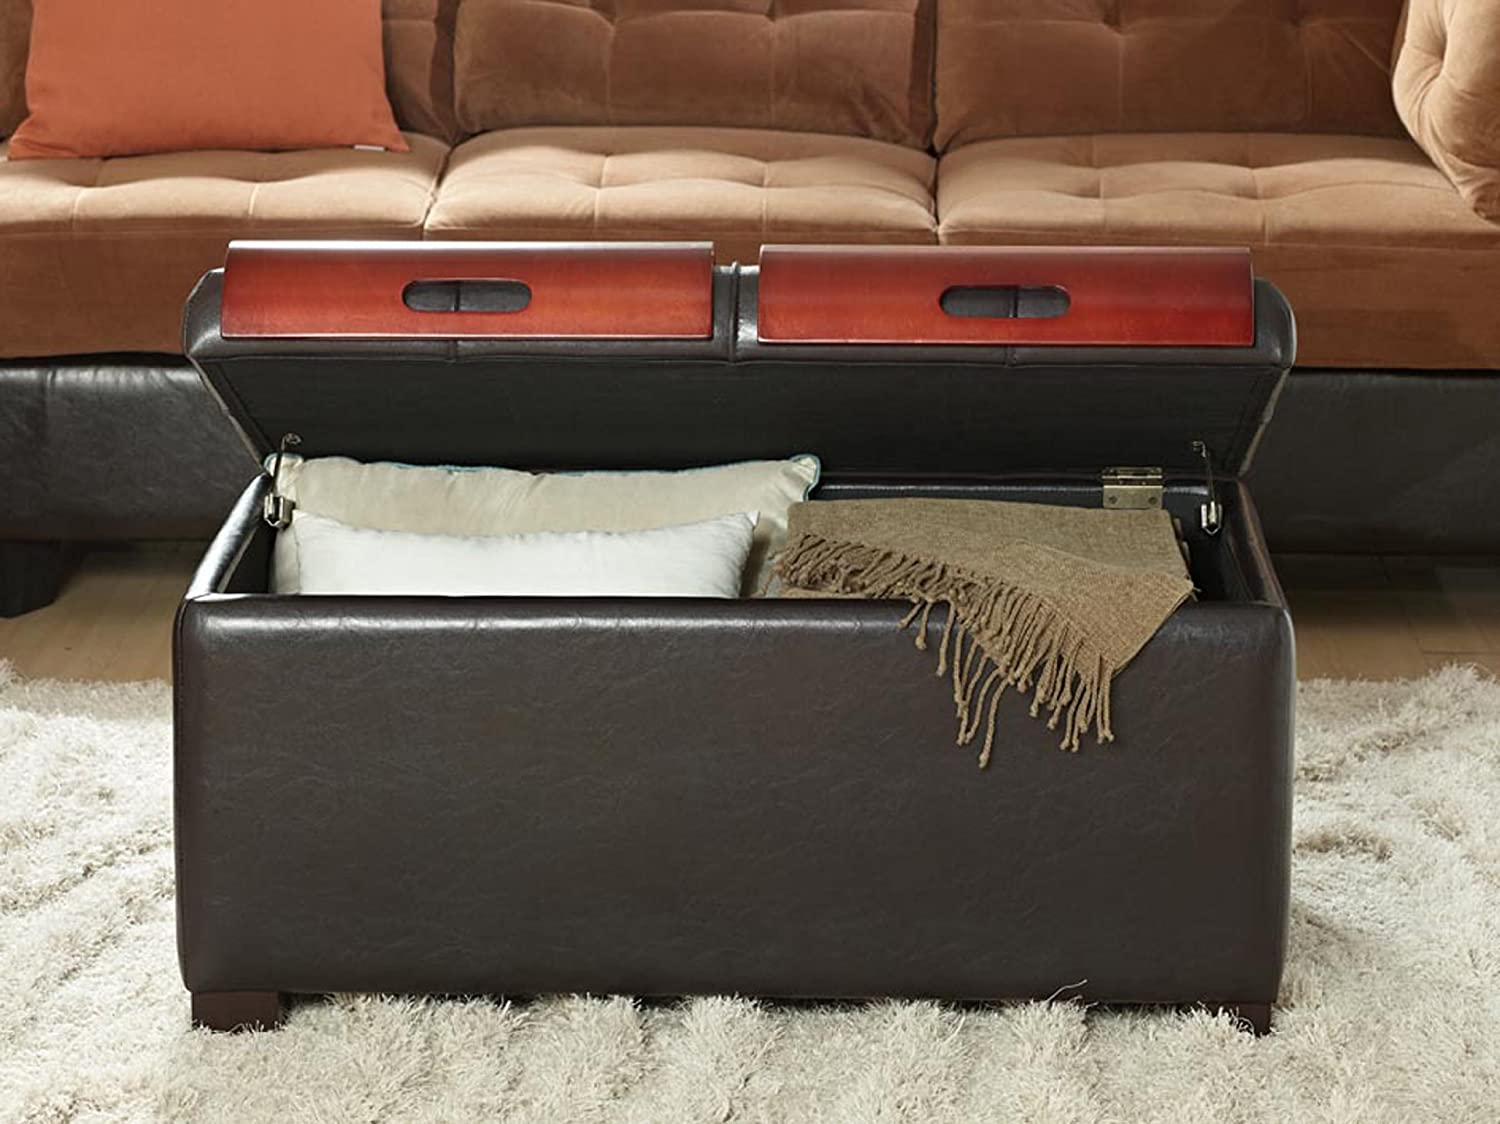 Delightful Amazon.com: Convenience Concepts Designs4Comfort Storage Ottoman With  Trays, Dark Espresso: Kitchen U0026 Dining